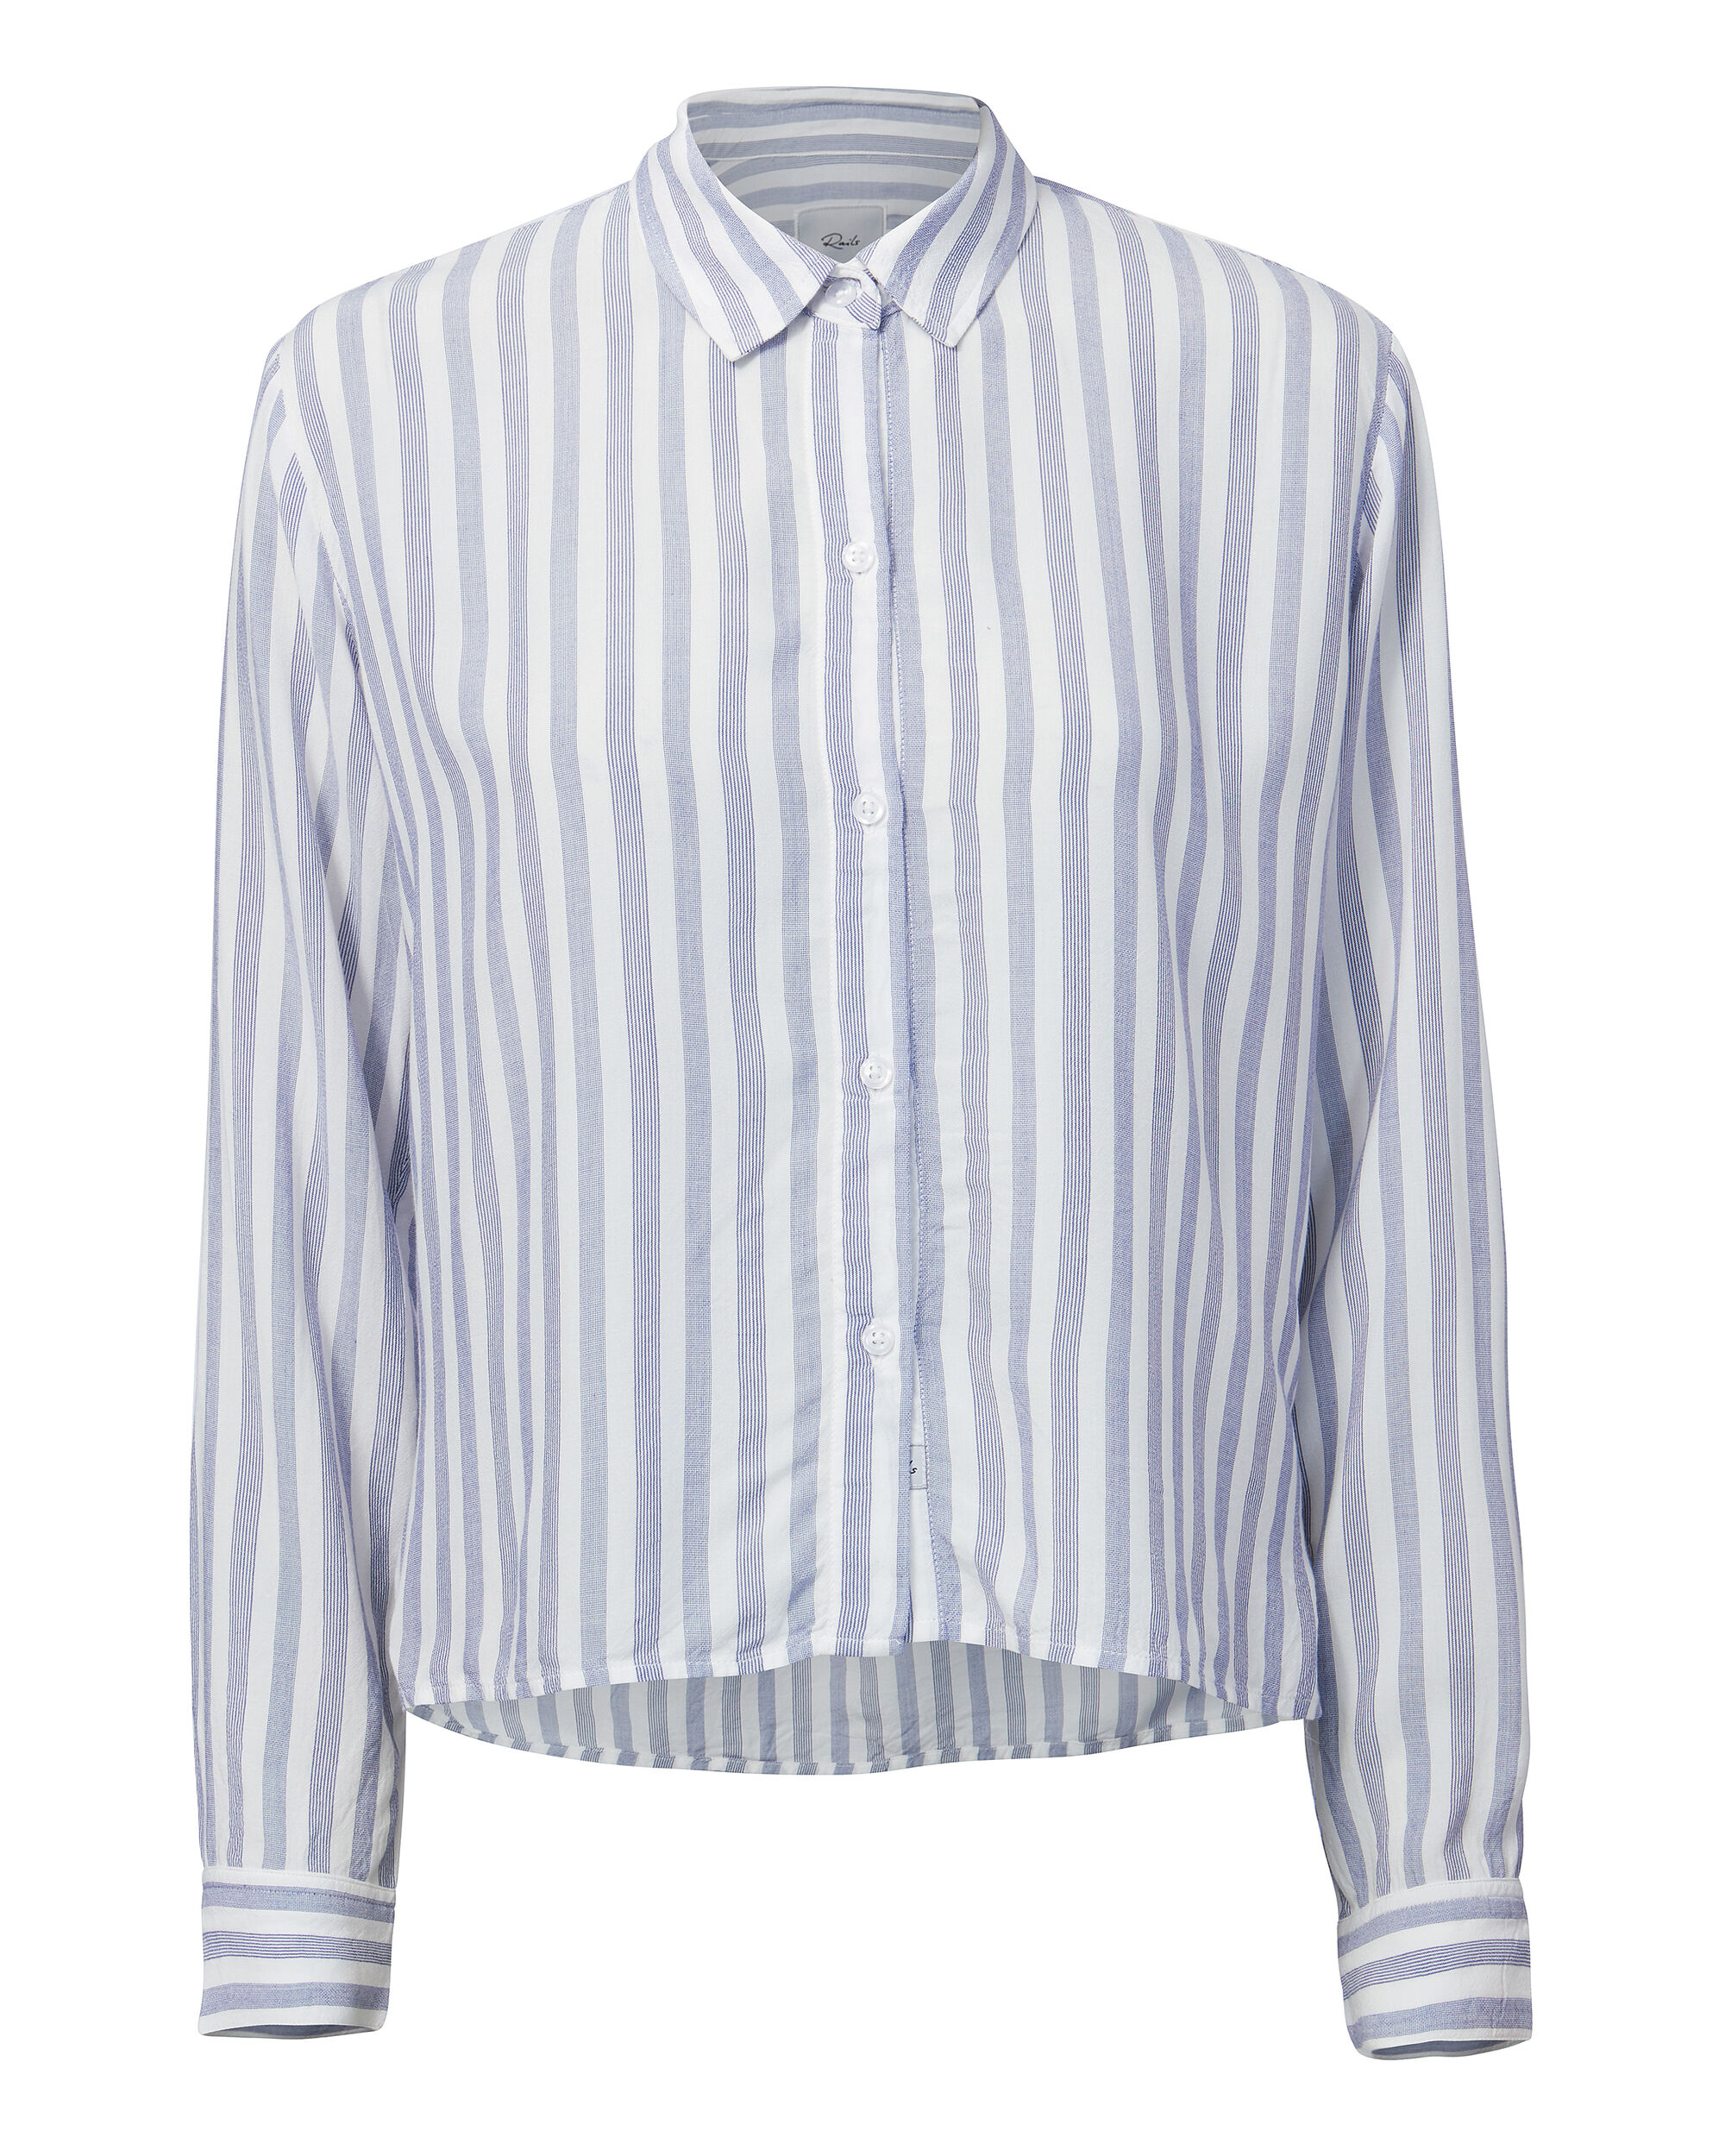 Audrey Bermuda Striped Top, WHITE/BLUE, hi-res